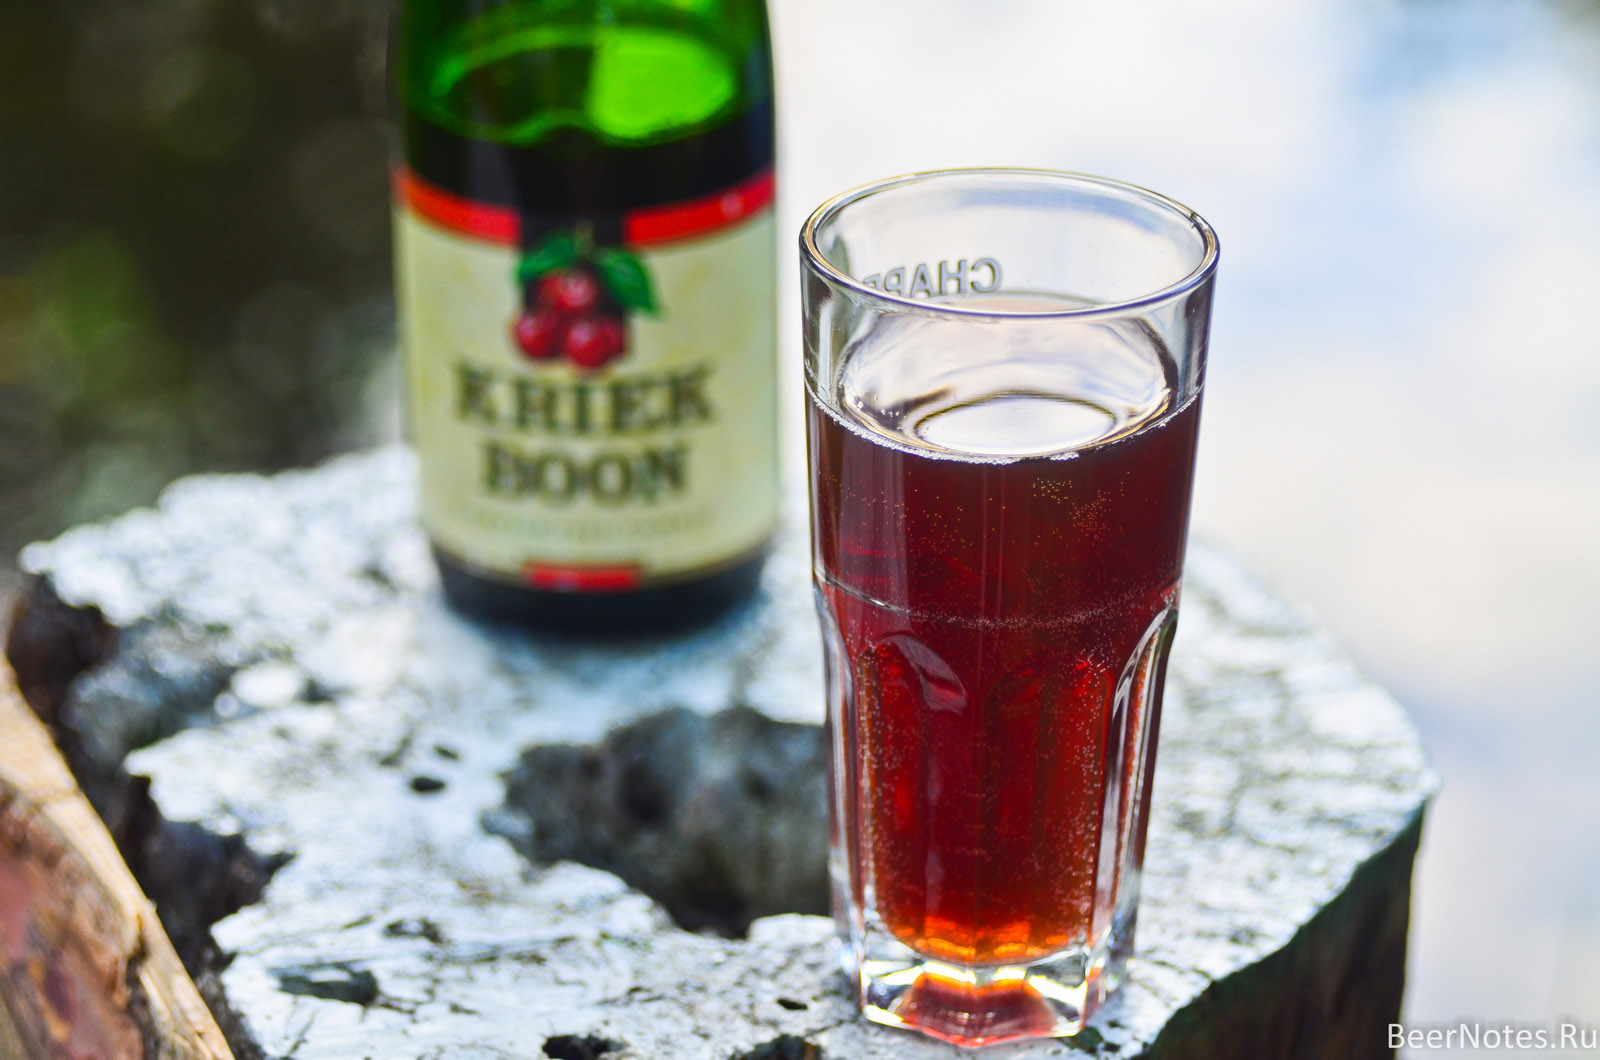 Boon Kriek 2010-2